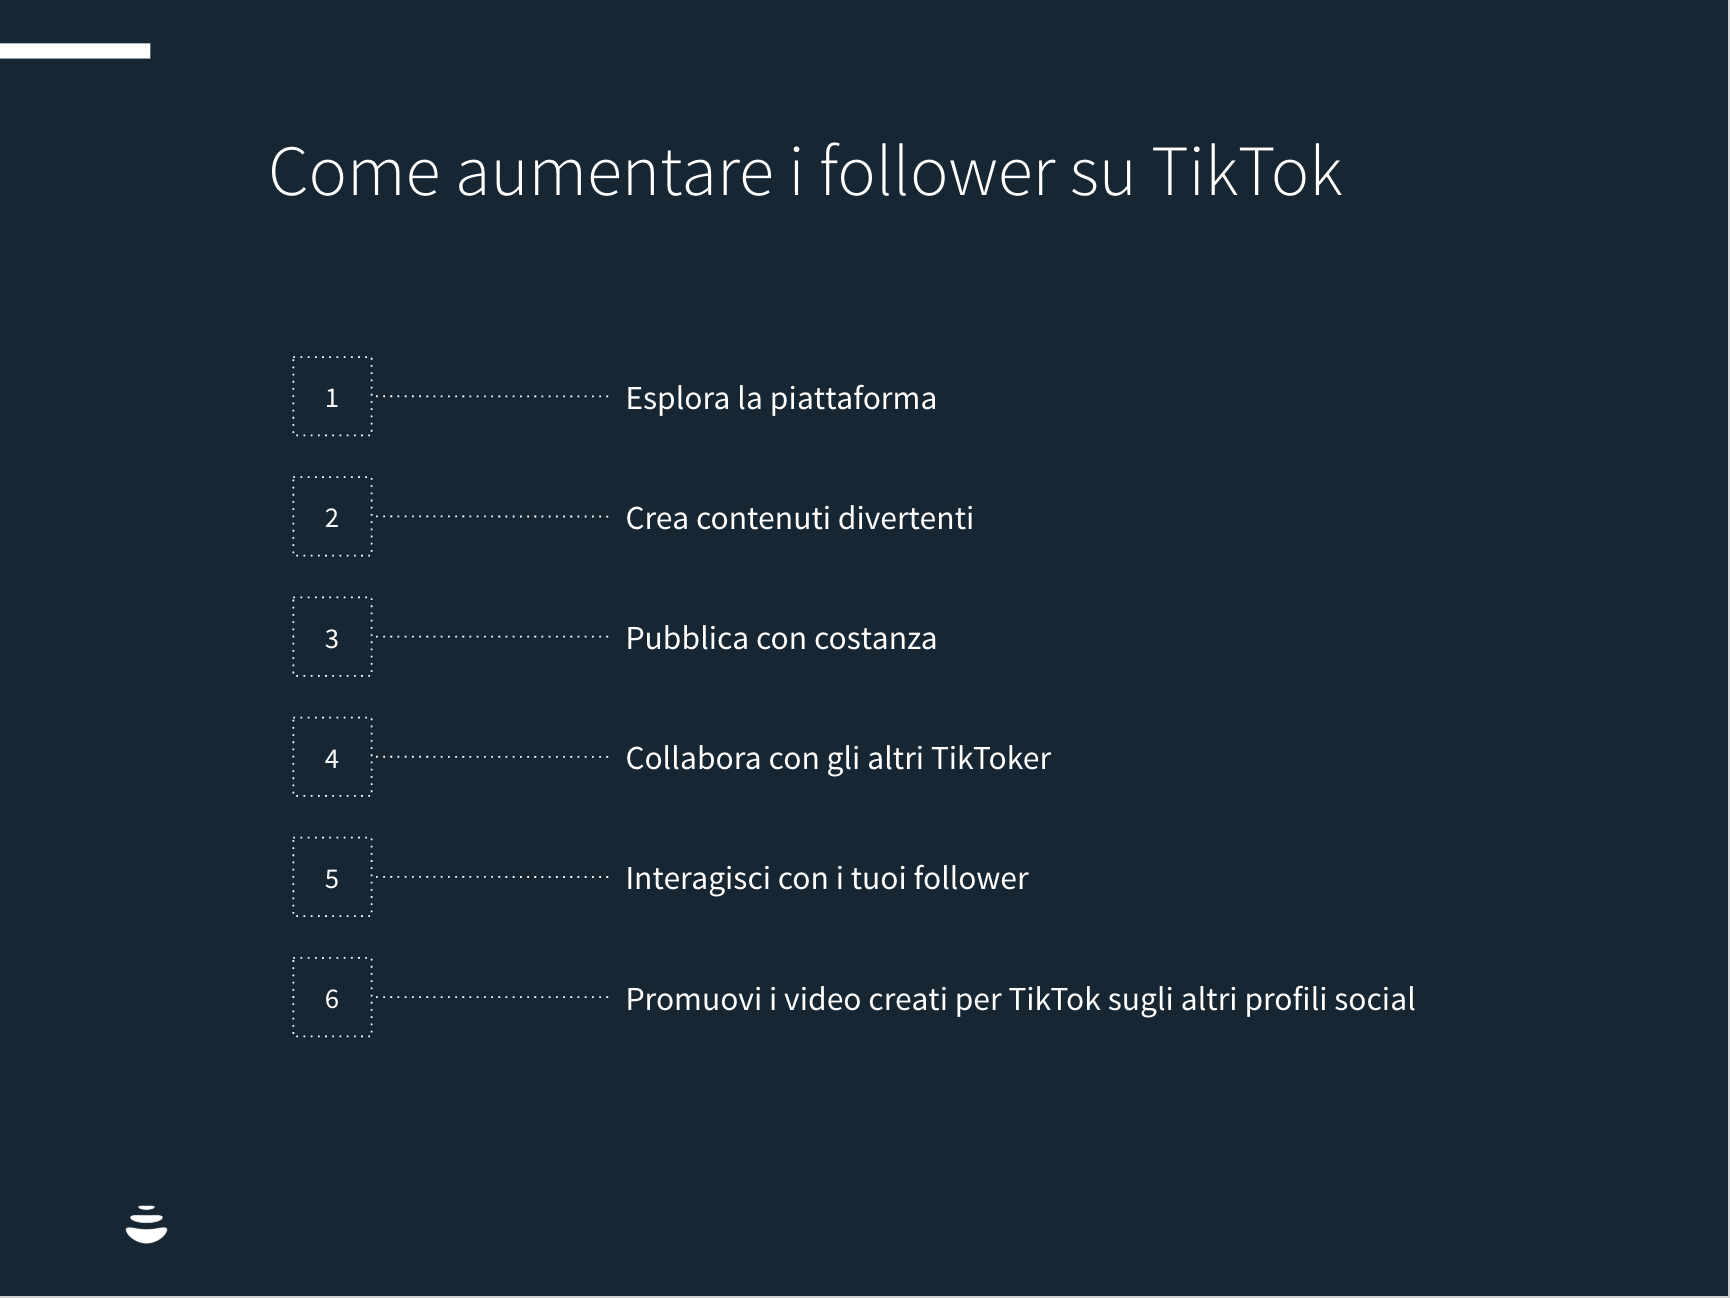 aumentare follower su tiktok